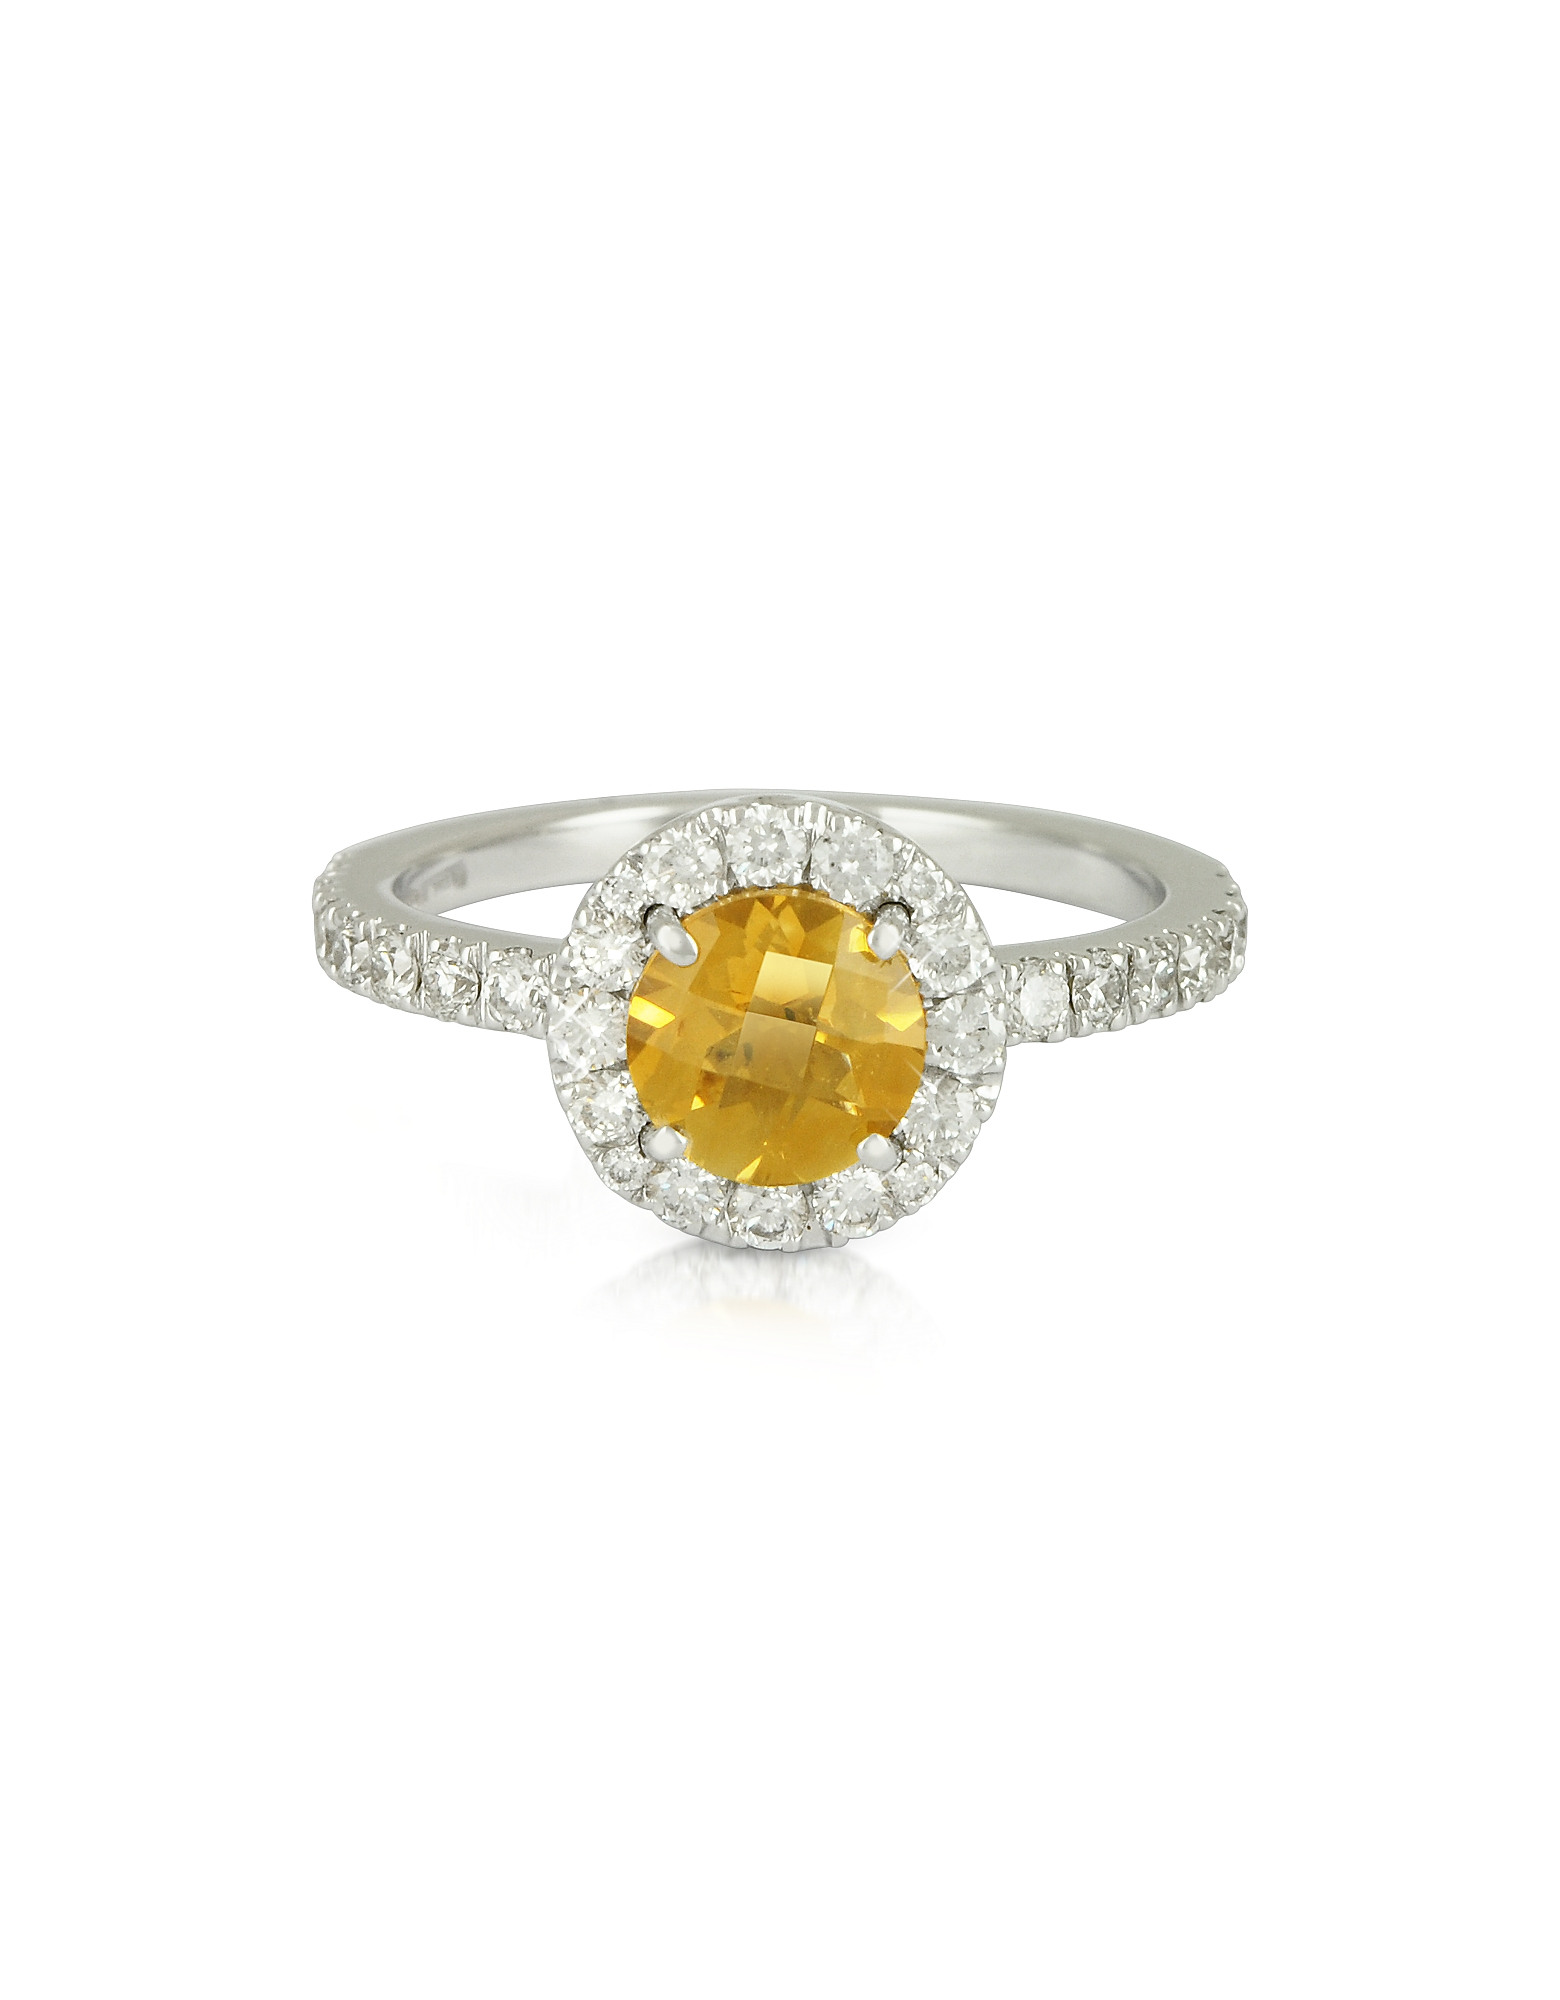 Forzieri Rings, 0.50 ct Diamond Pave 18K White Gold Ring w/Citrine Quartz